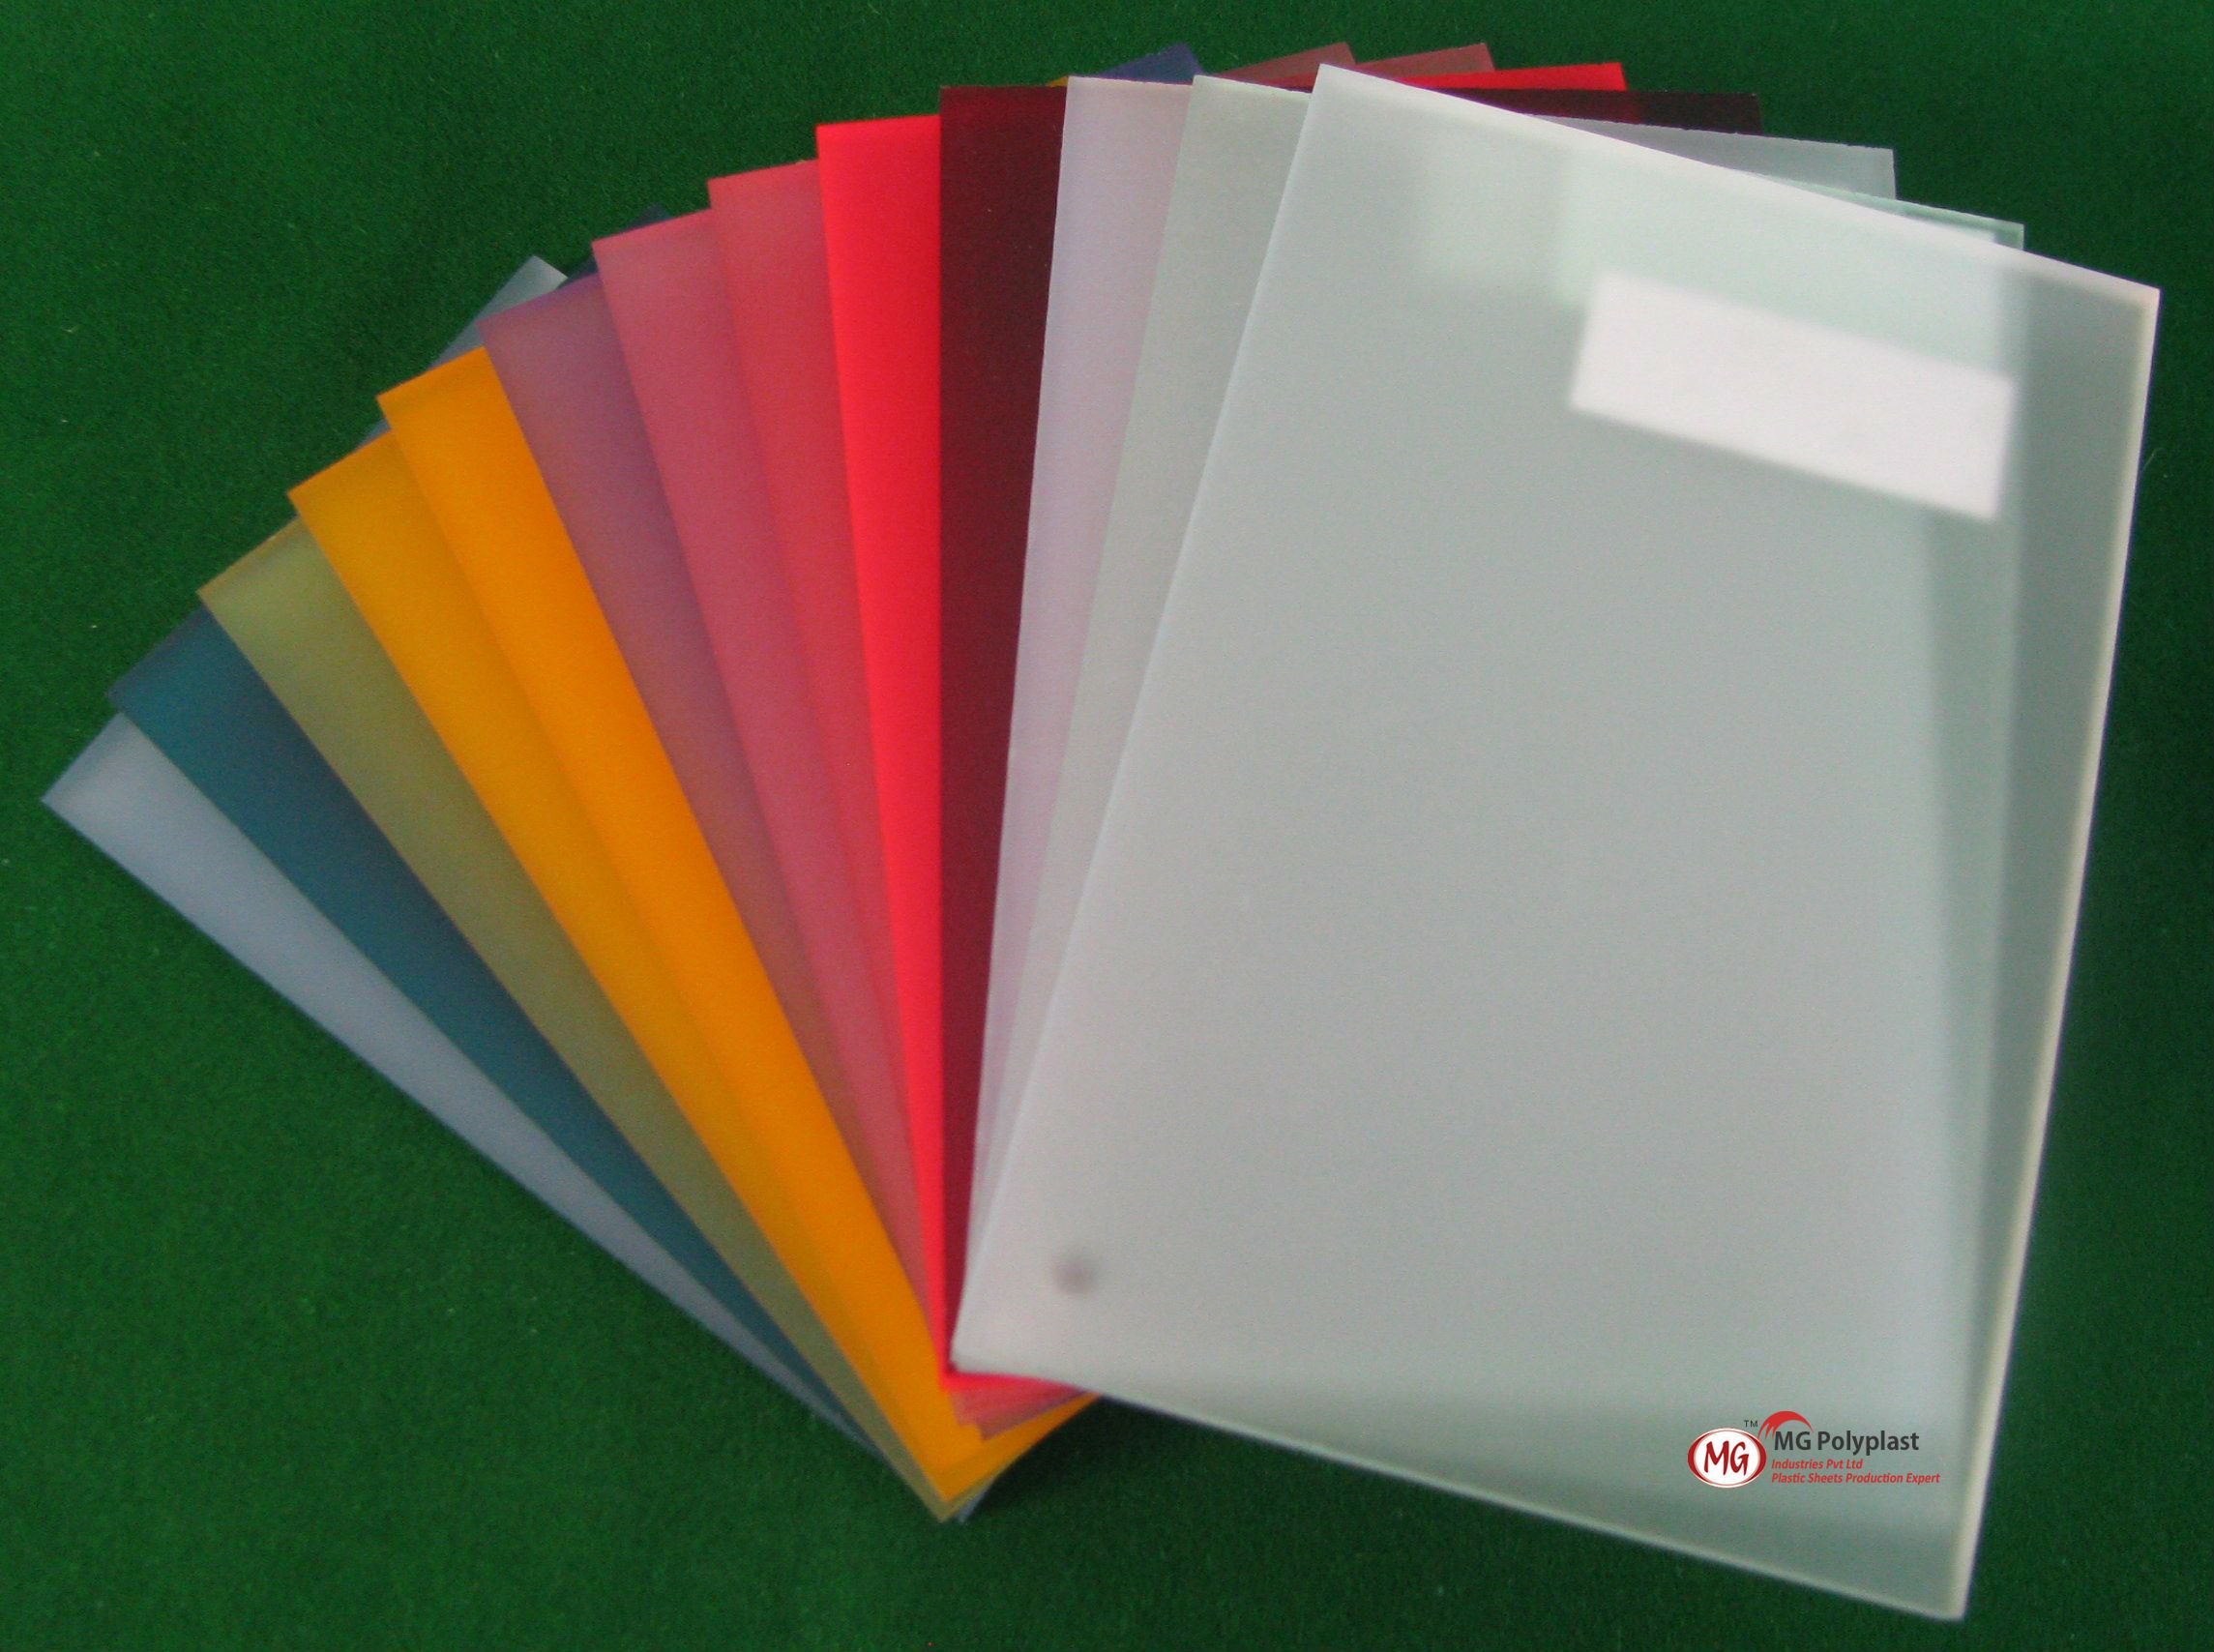 Mg Extrudedacrylicsheets Are Premium Quality Of Sheets Come In Wide Range Of Different Sizes And Thickness Avail Acrylic Sheets Plastic Sheets Plexus Products